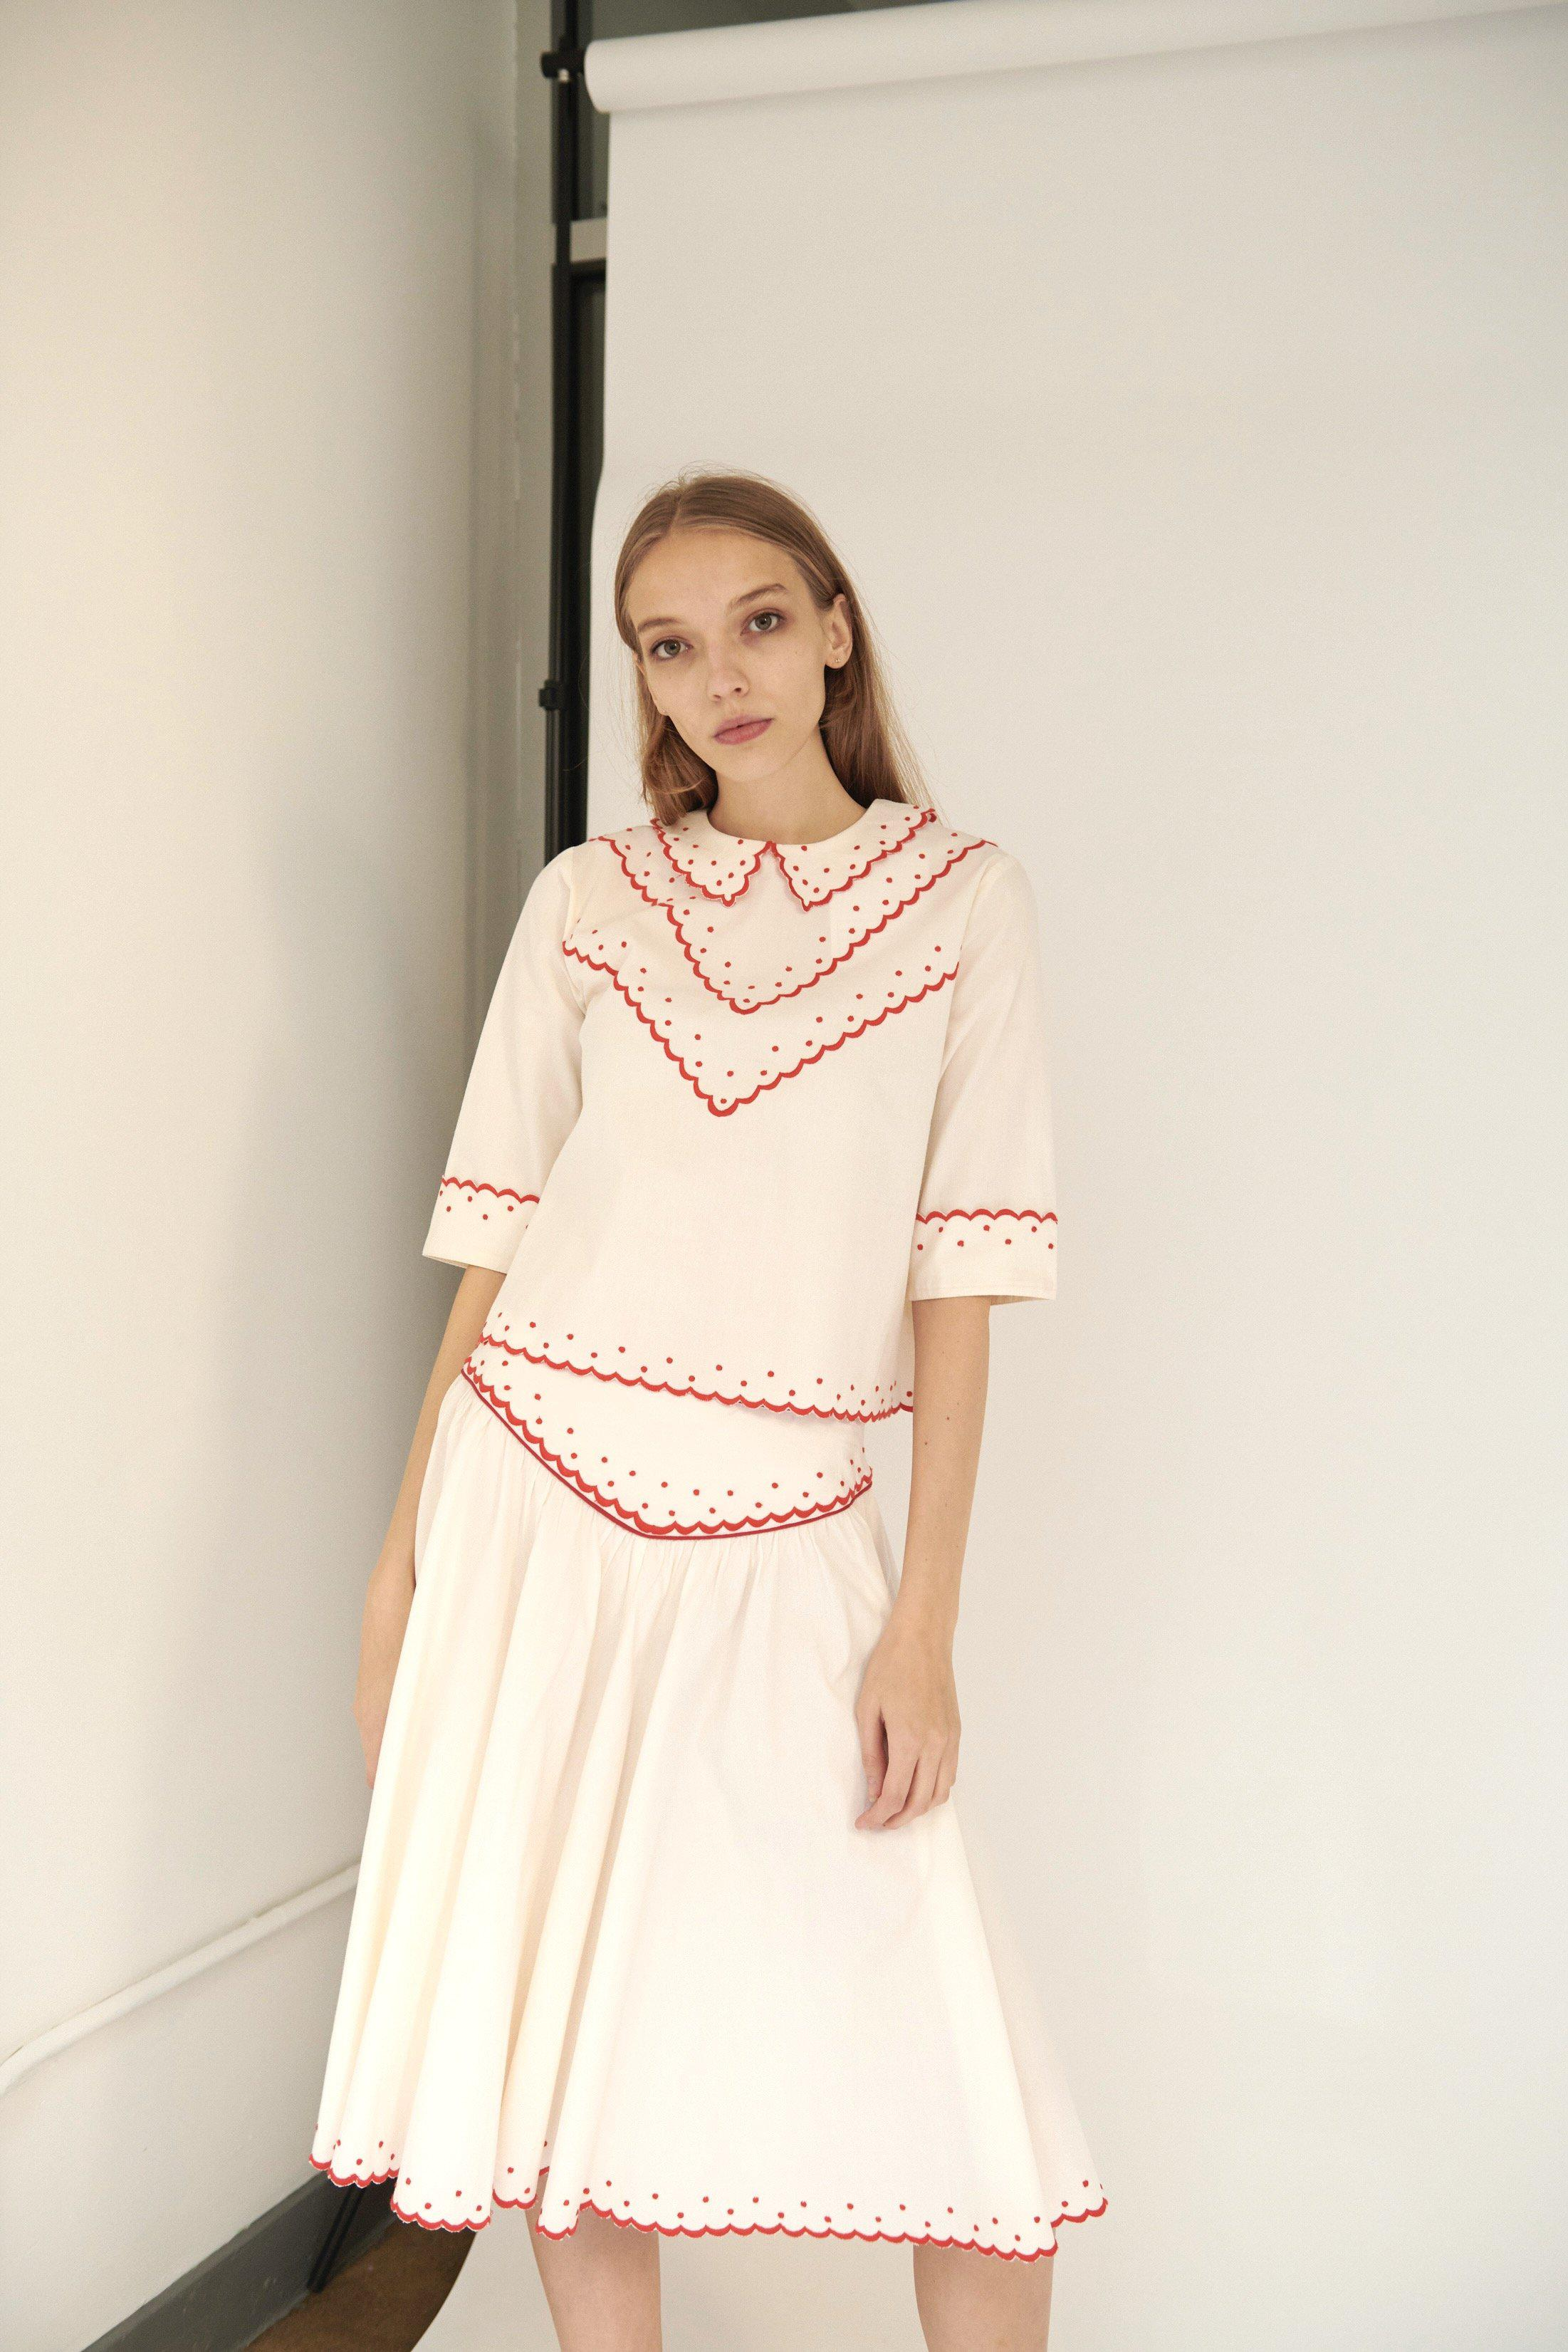 Shirley Skirt in Cream with Red Embroidery